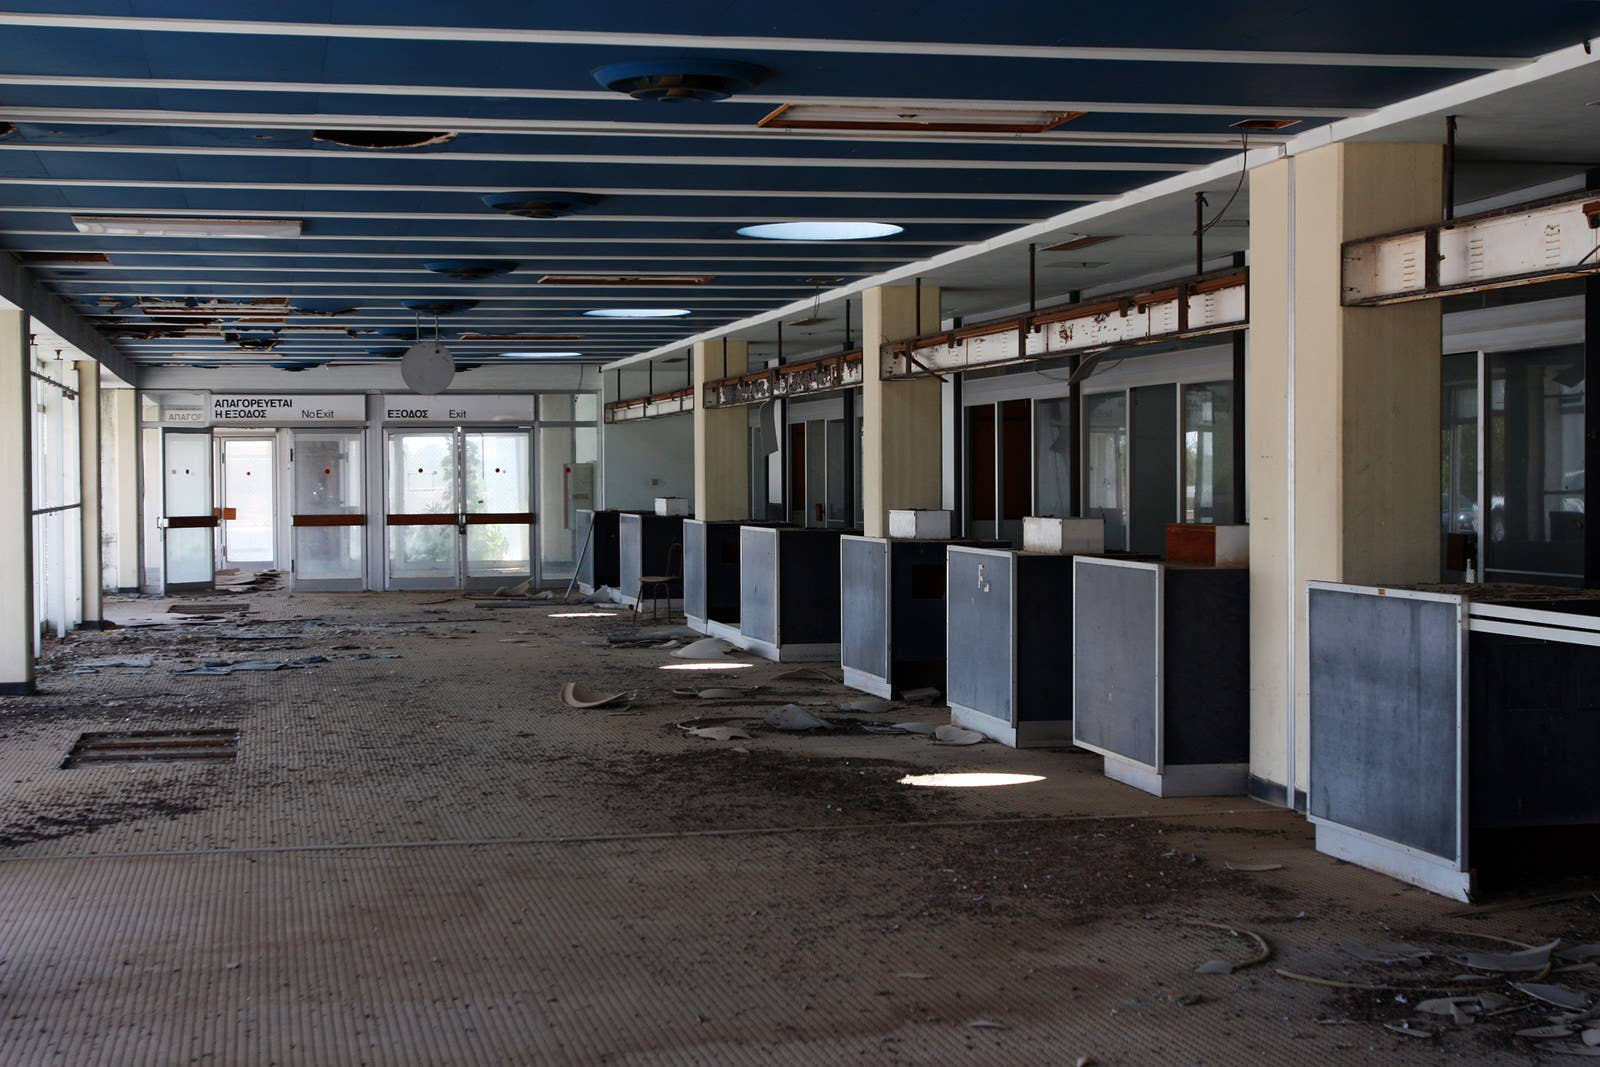 Abandoned ticket counters decay inside the terminal building.